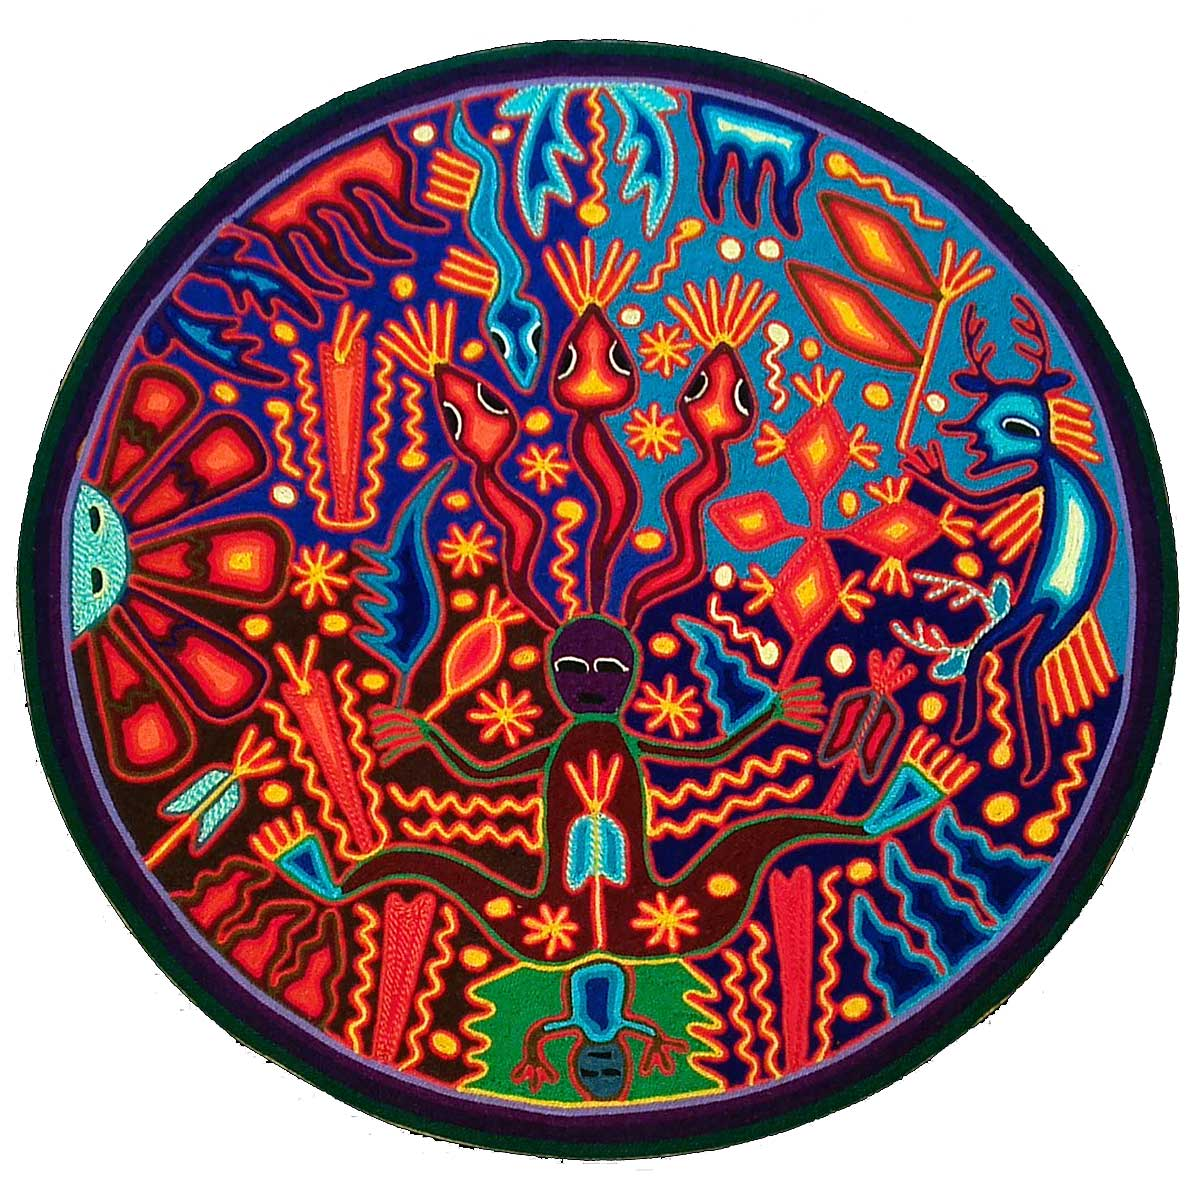 Eliseo de la Cruz Benítez: Premier Huichol Yarn Painting Depicting Birth